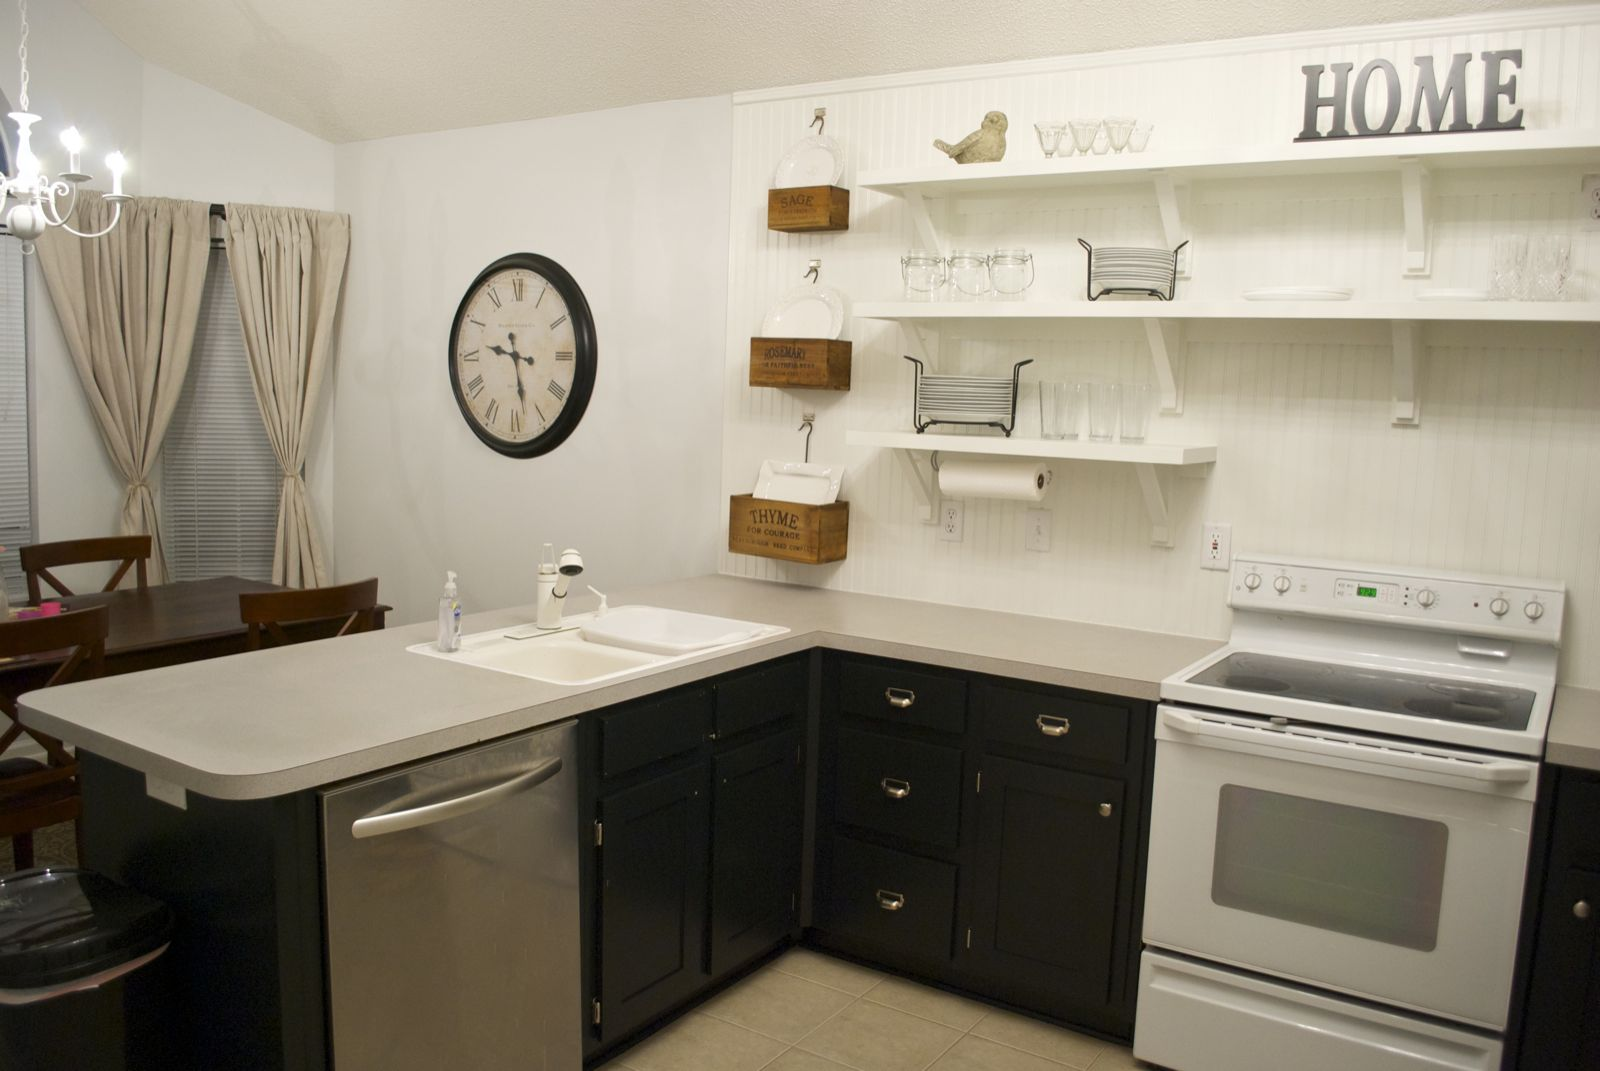 Kitchens with Open Upper Cabinets and Shelving